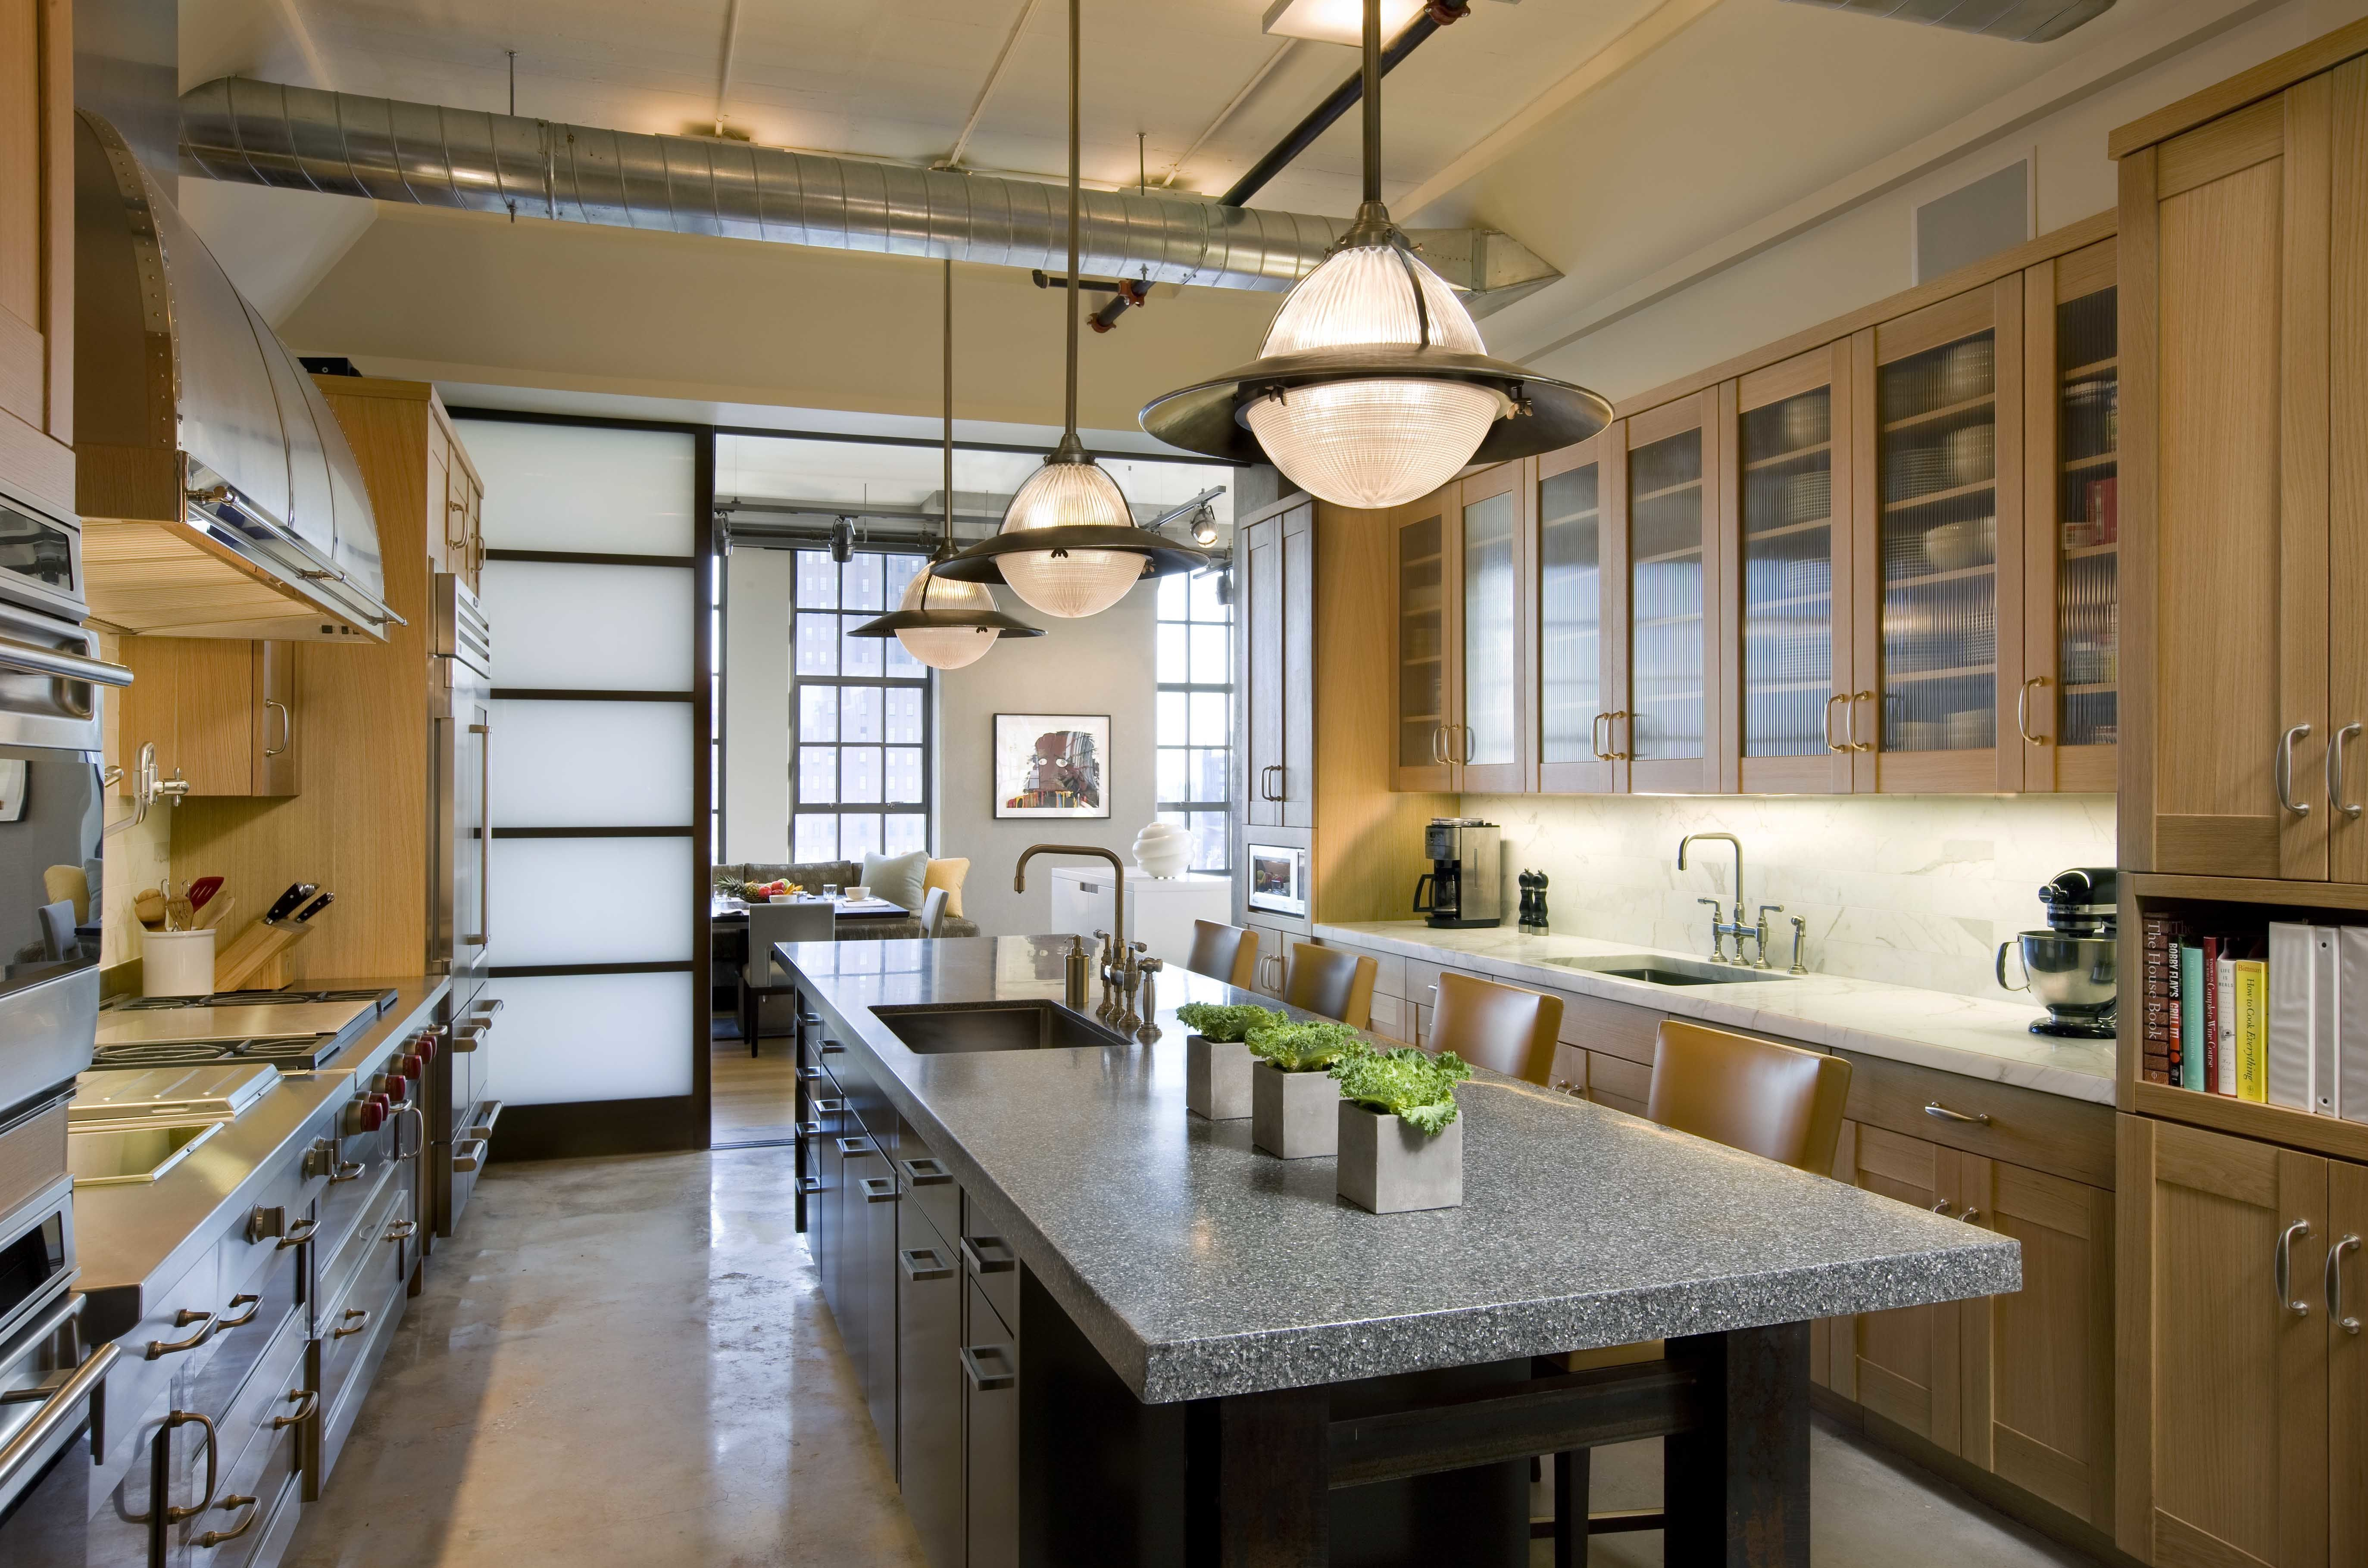 6 Clever Kitchen Design Ideas from St. Charles of New York ...